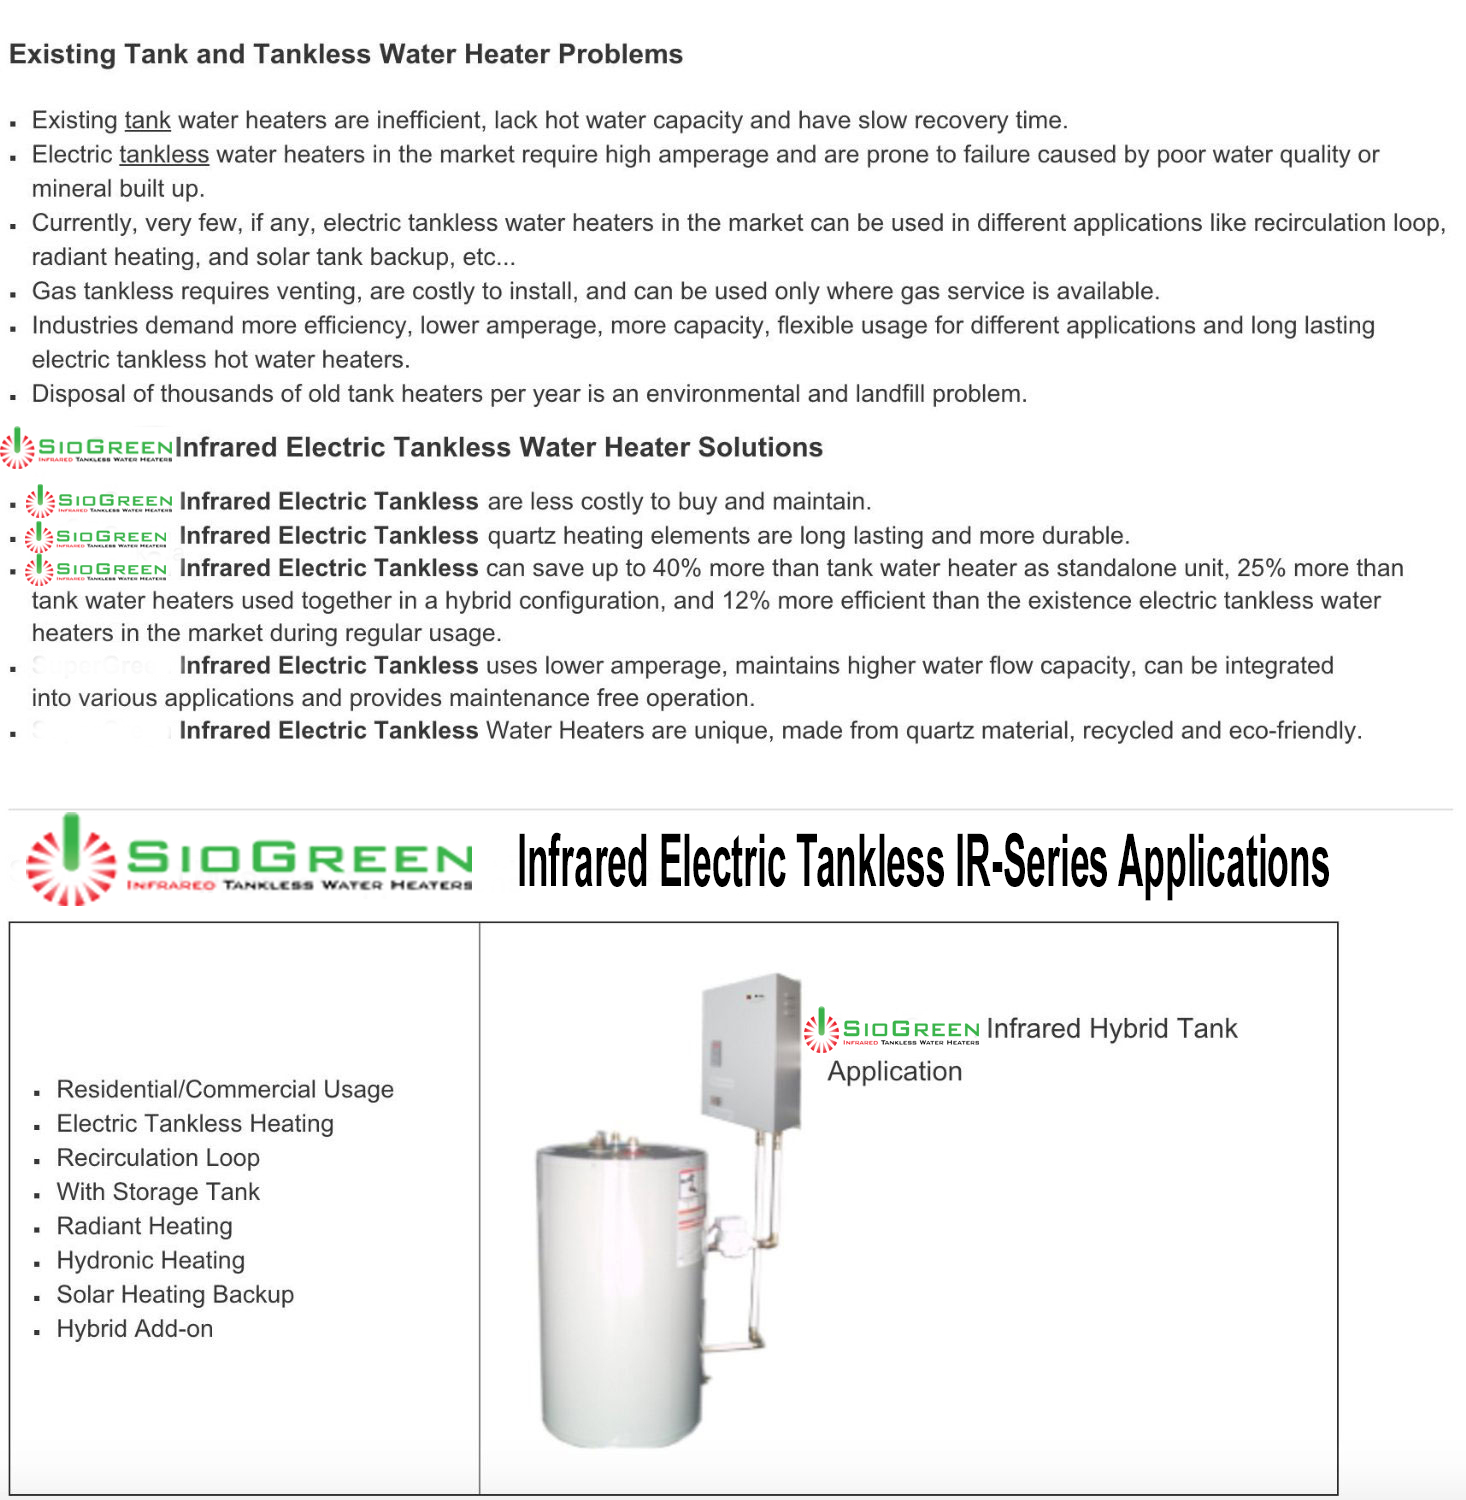 Siogreen Infrared Tankless Water Heater Ir 288pou Siogreen Infrared Tankless Water Heater Ir 288pou Ir288 Pou 369 99 Bonran Home Plus Bringing Products That Create A Safe Comfortable And Relaxing Environment To Your